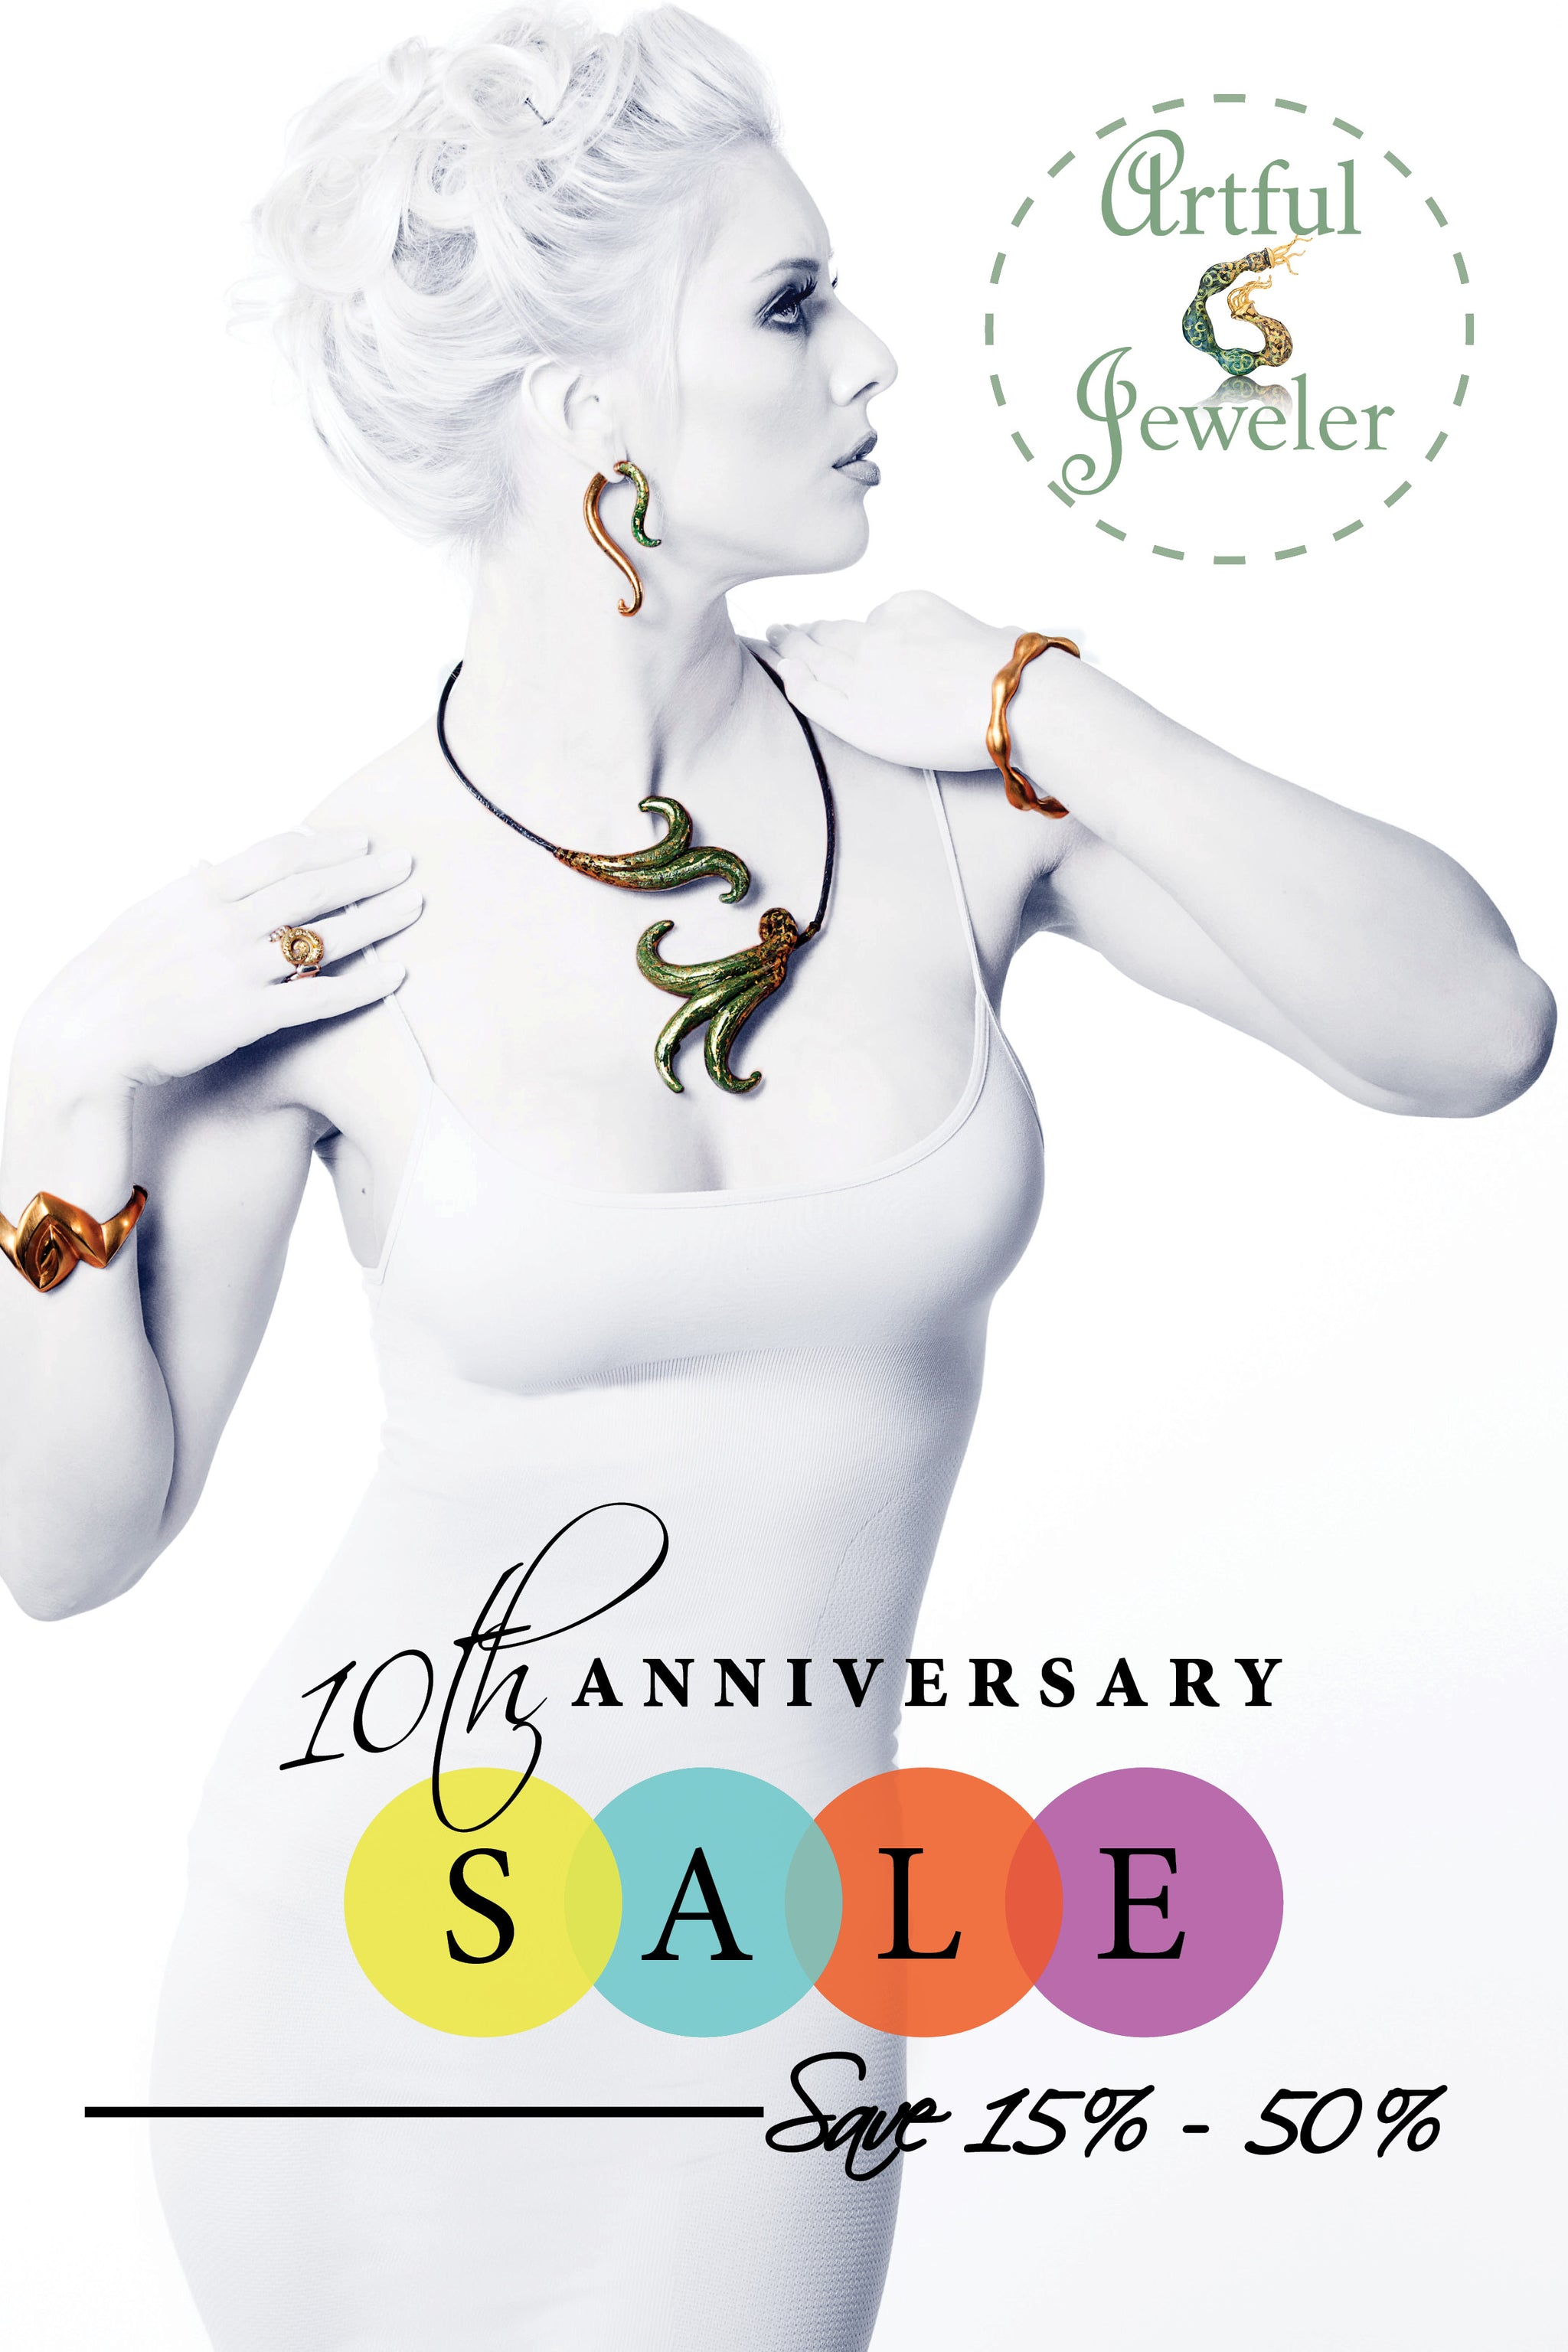 10 Year Anniversary! Select Jewelry Now on Sale Save 15% - 50%.